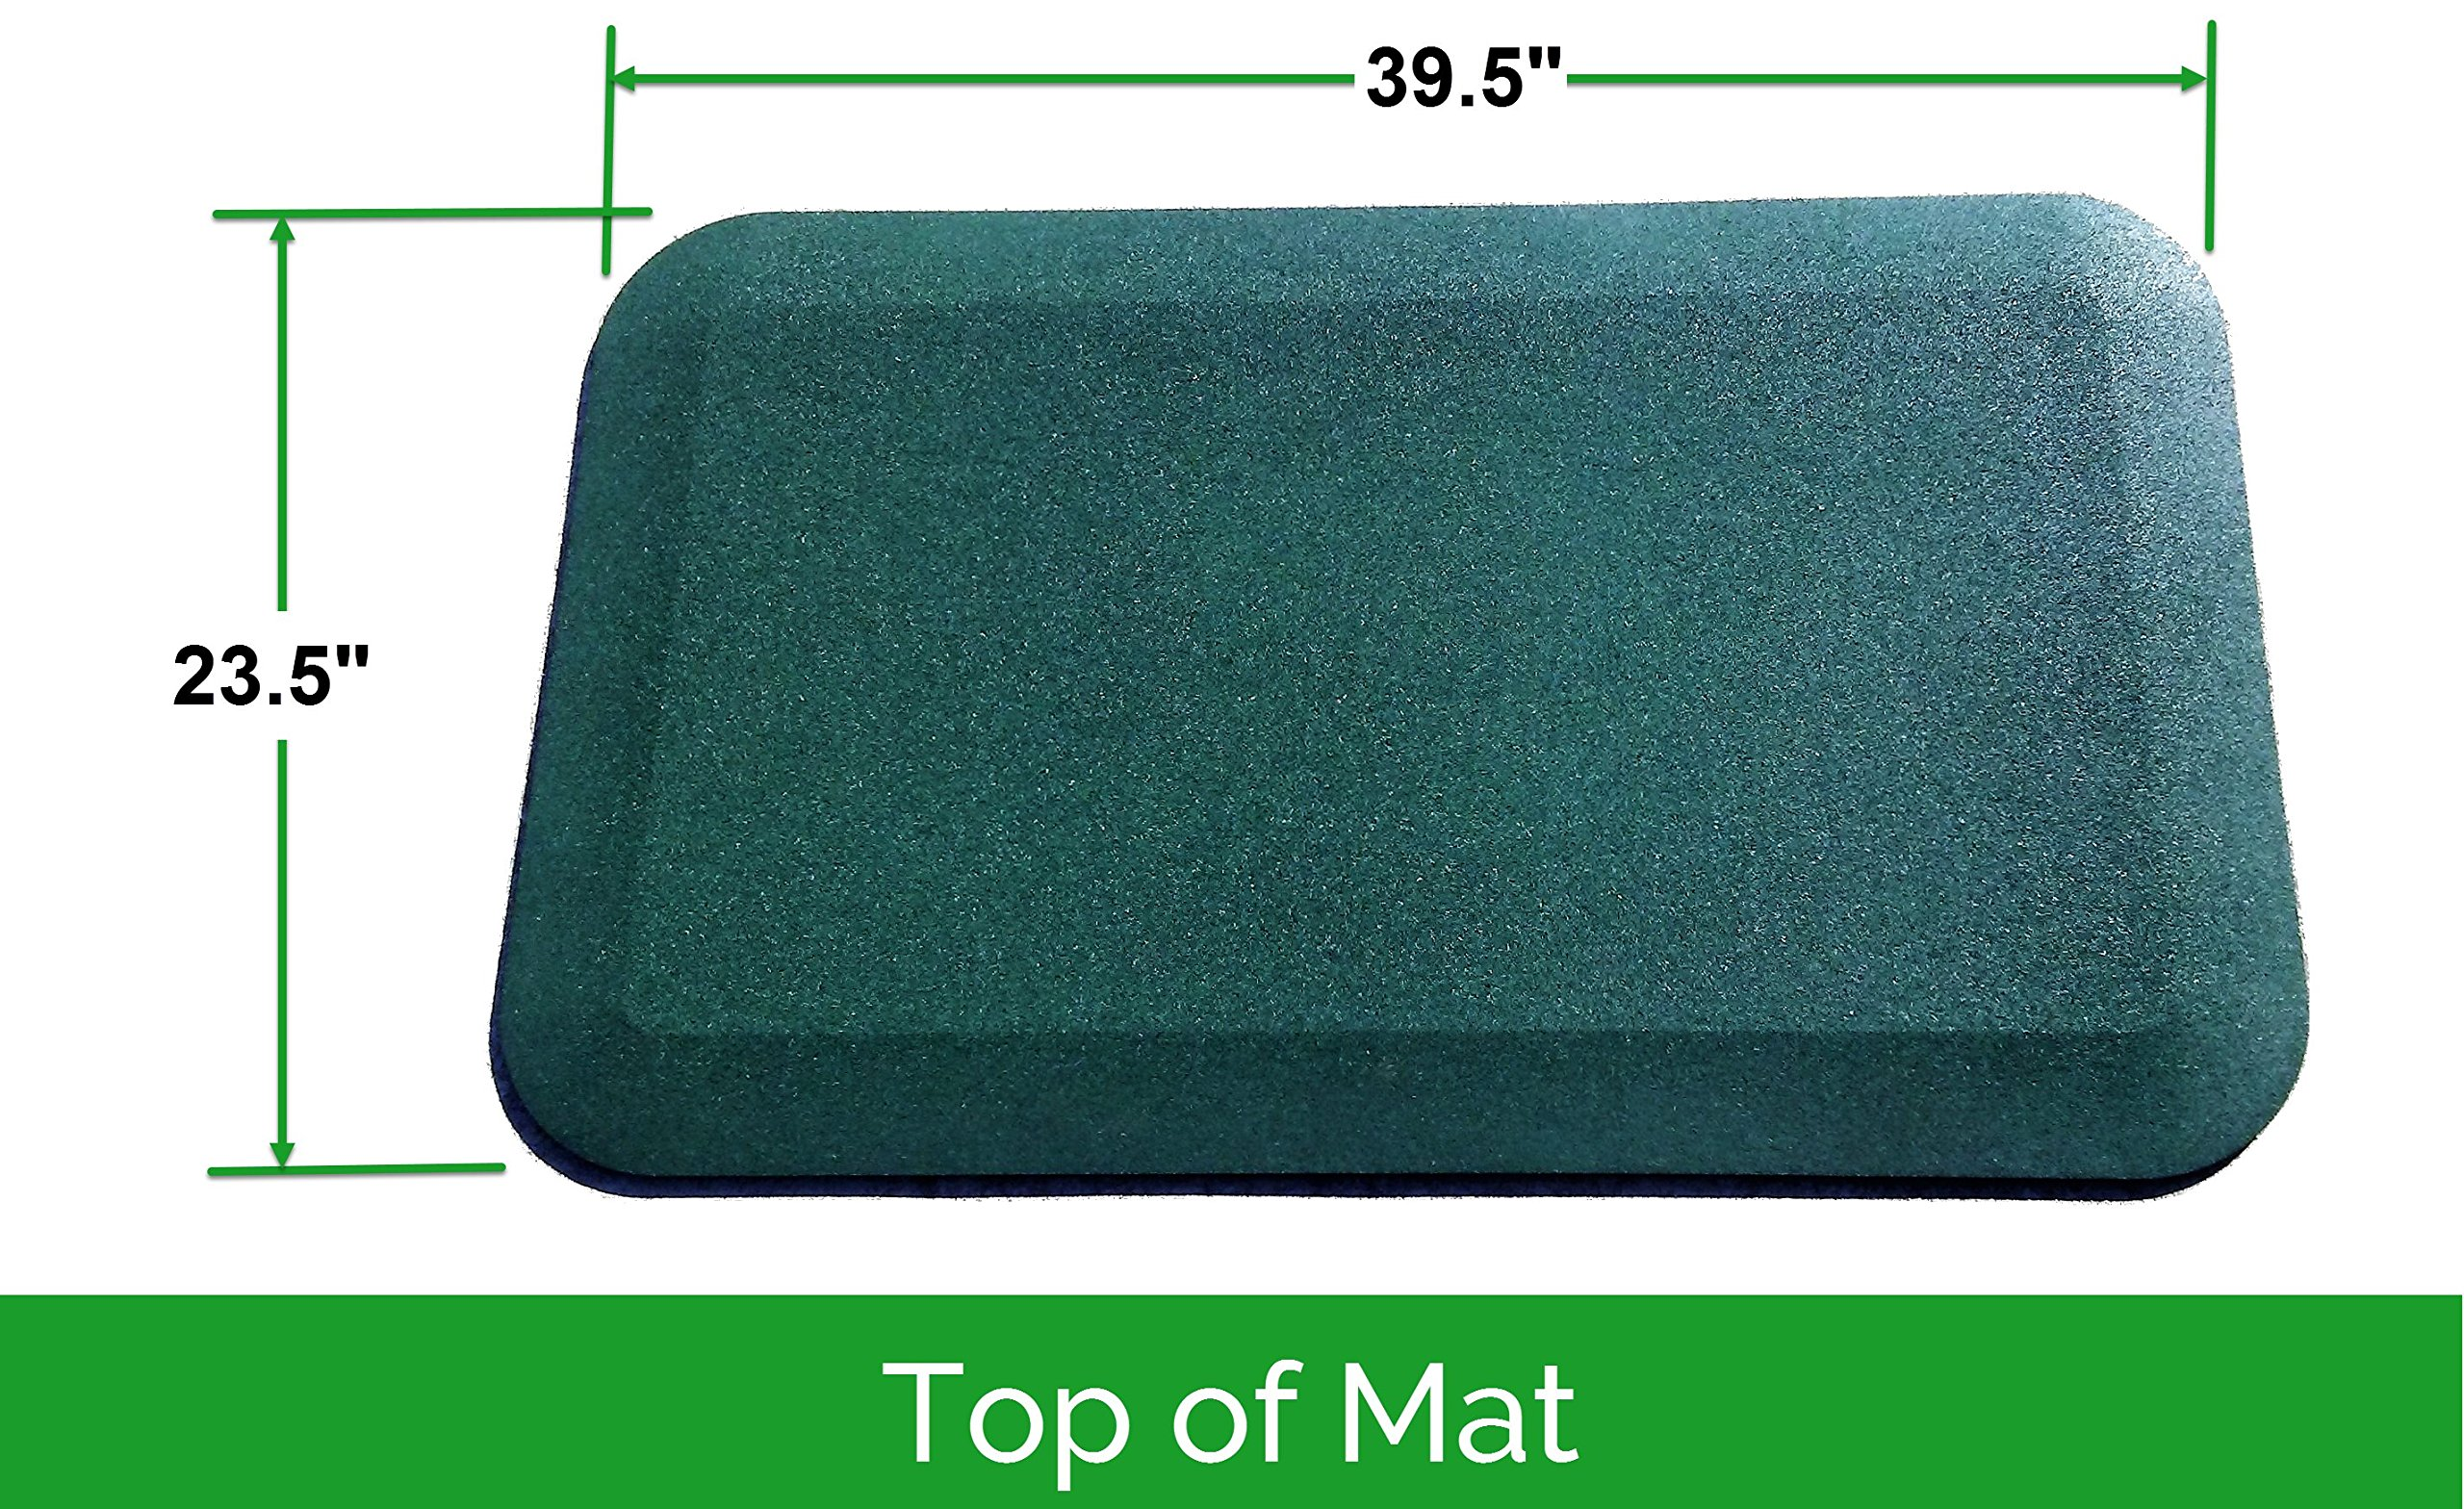 Slide & Swing Set Protective Rubber Mat | Certified Safe for Playground Surfaces (Set of 2) by Rubber Floors and More (Image #2)